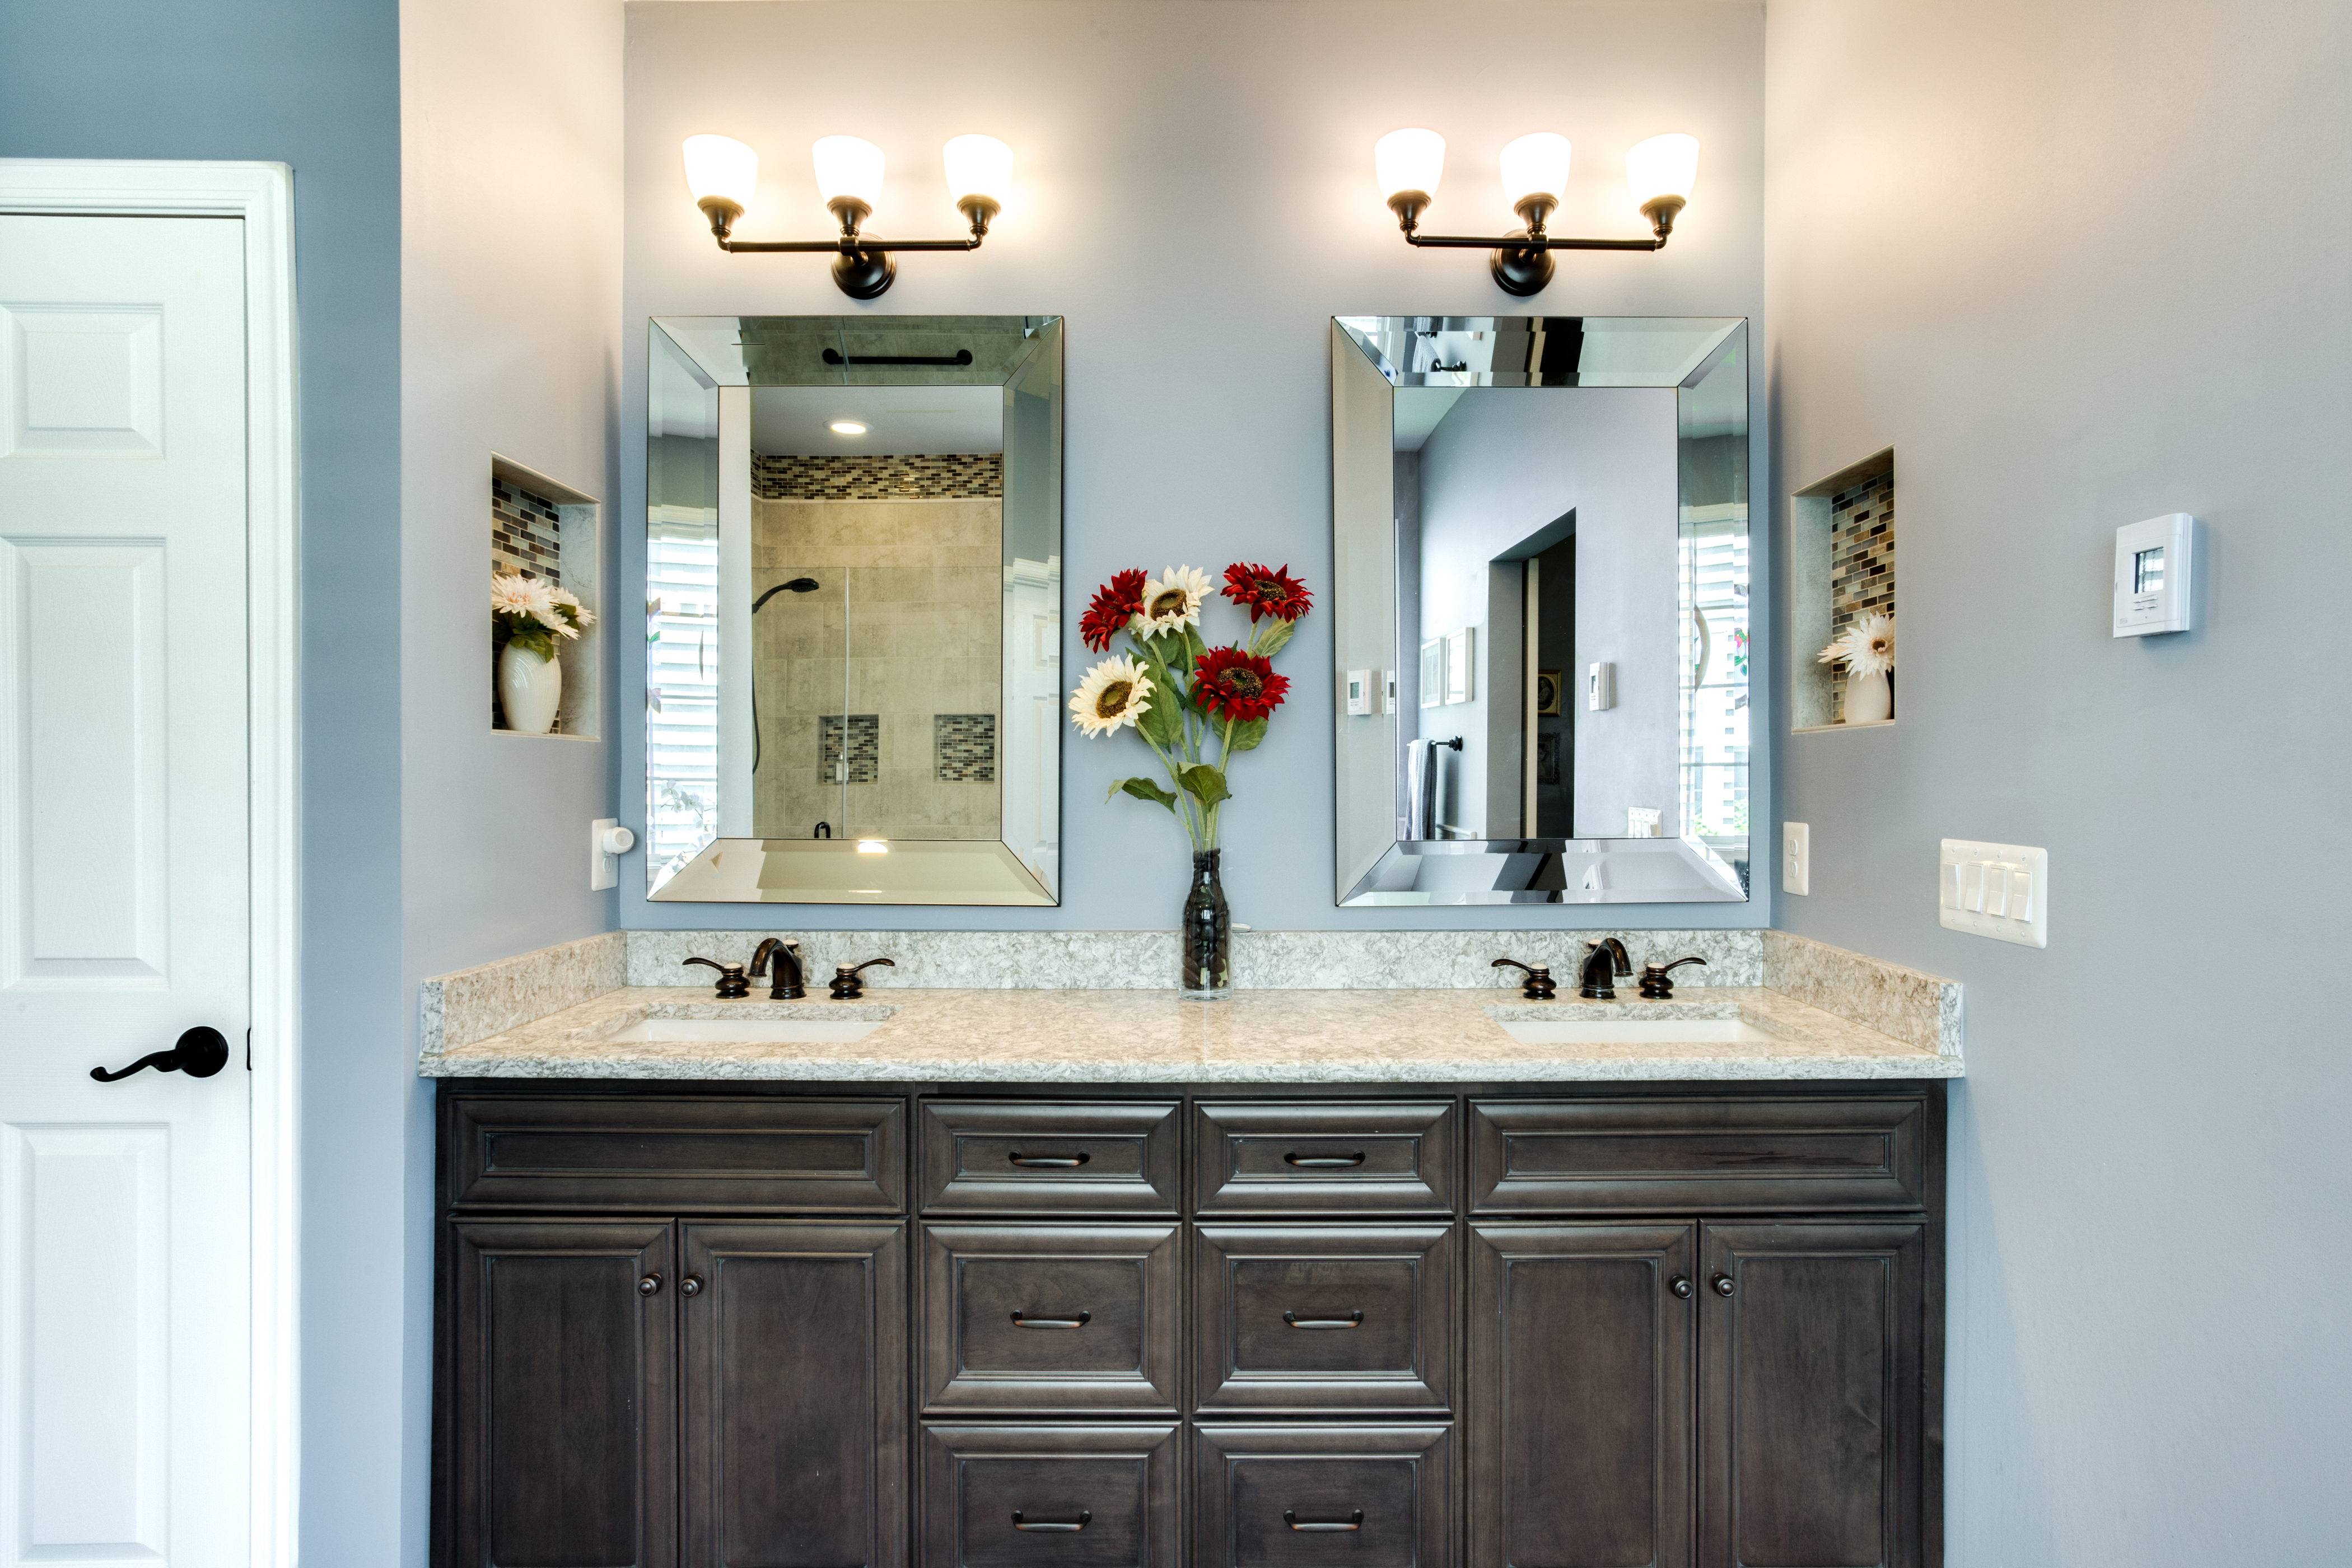 Foster Remodeling Solutions, Inc. are the bathroom remodel experts!